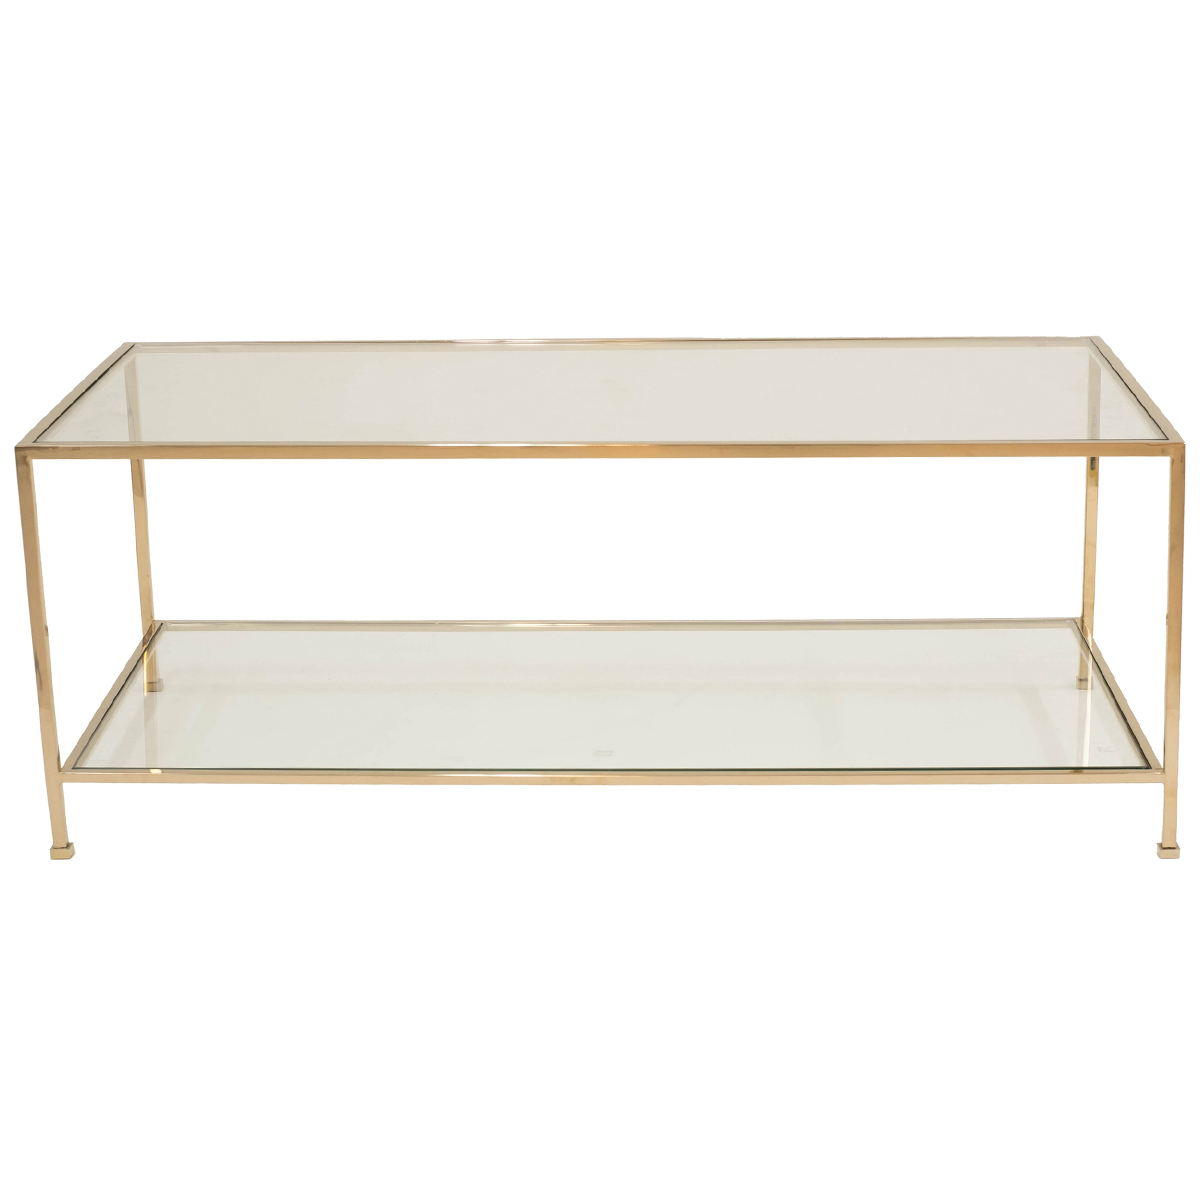 Wing Coffee Table – Polished Brass